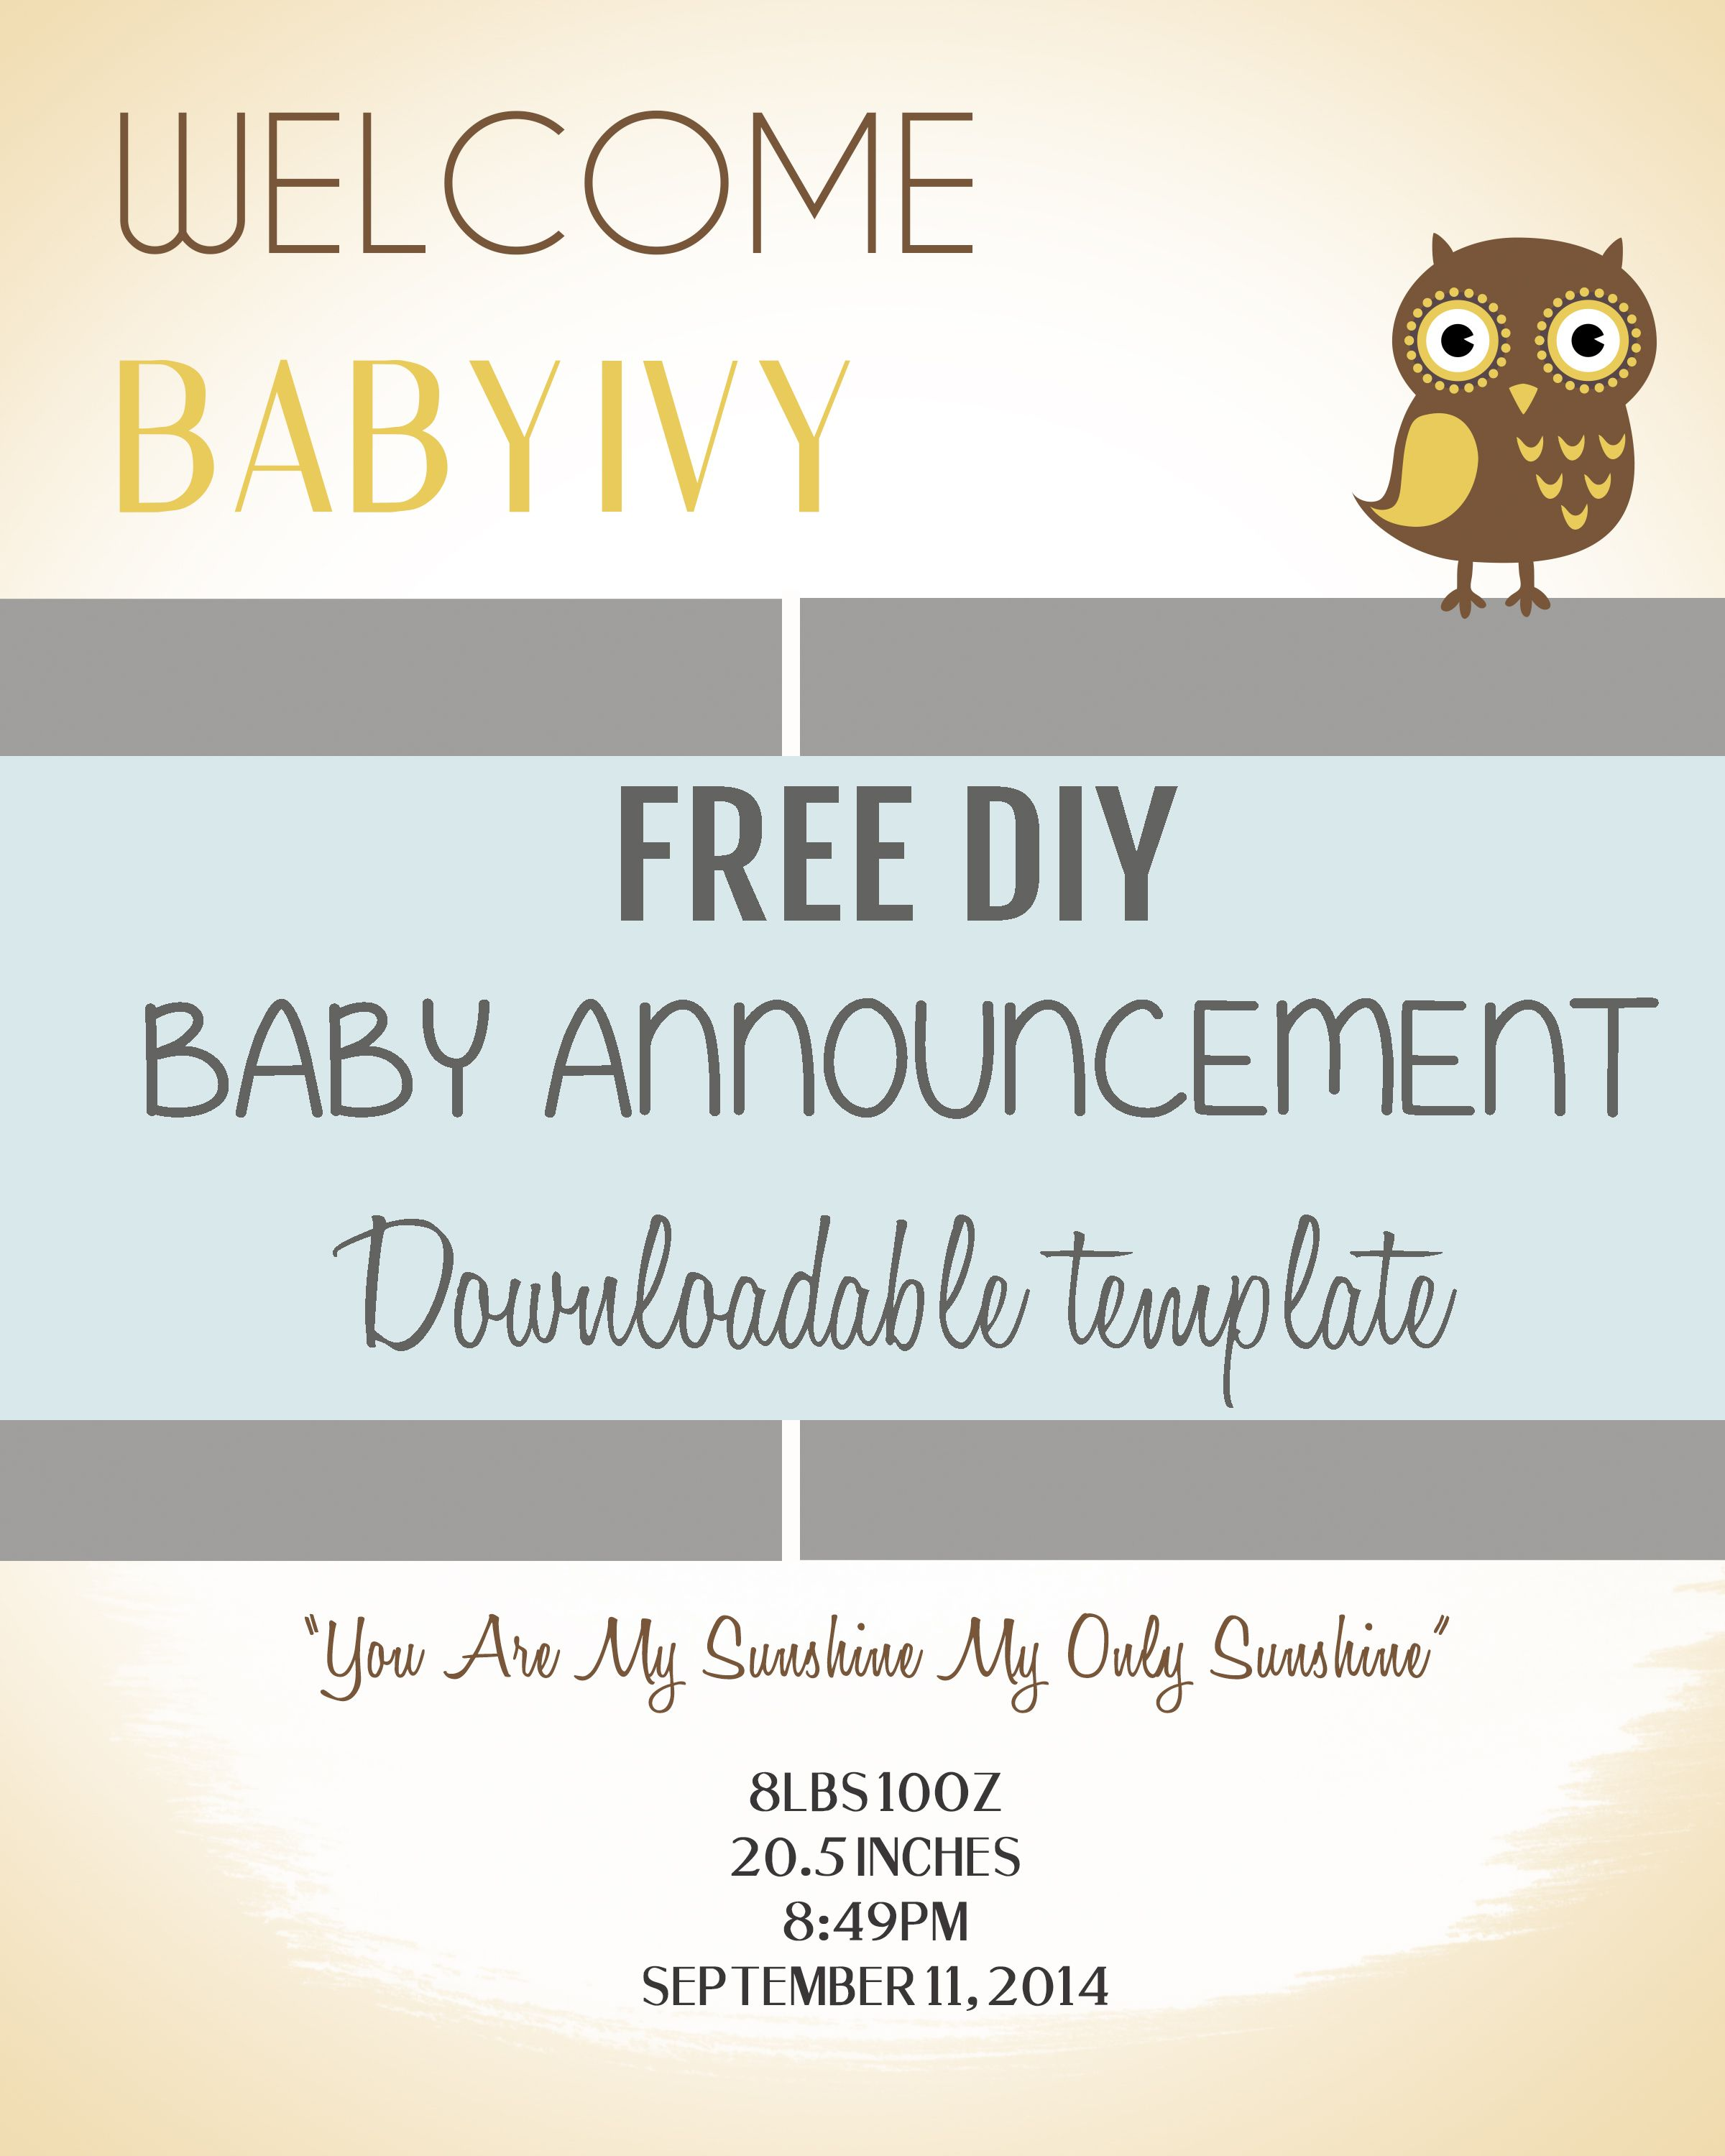 free online birth announcement templates - diy baby announcement template pee wee pinterest